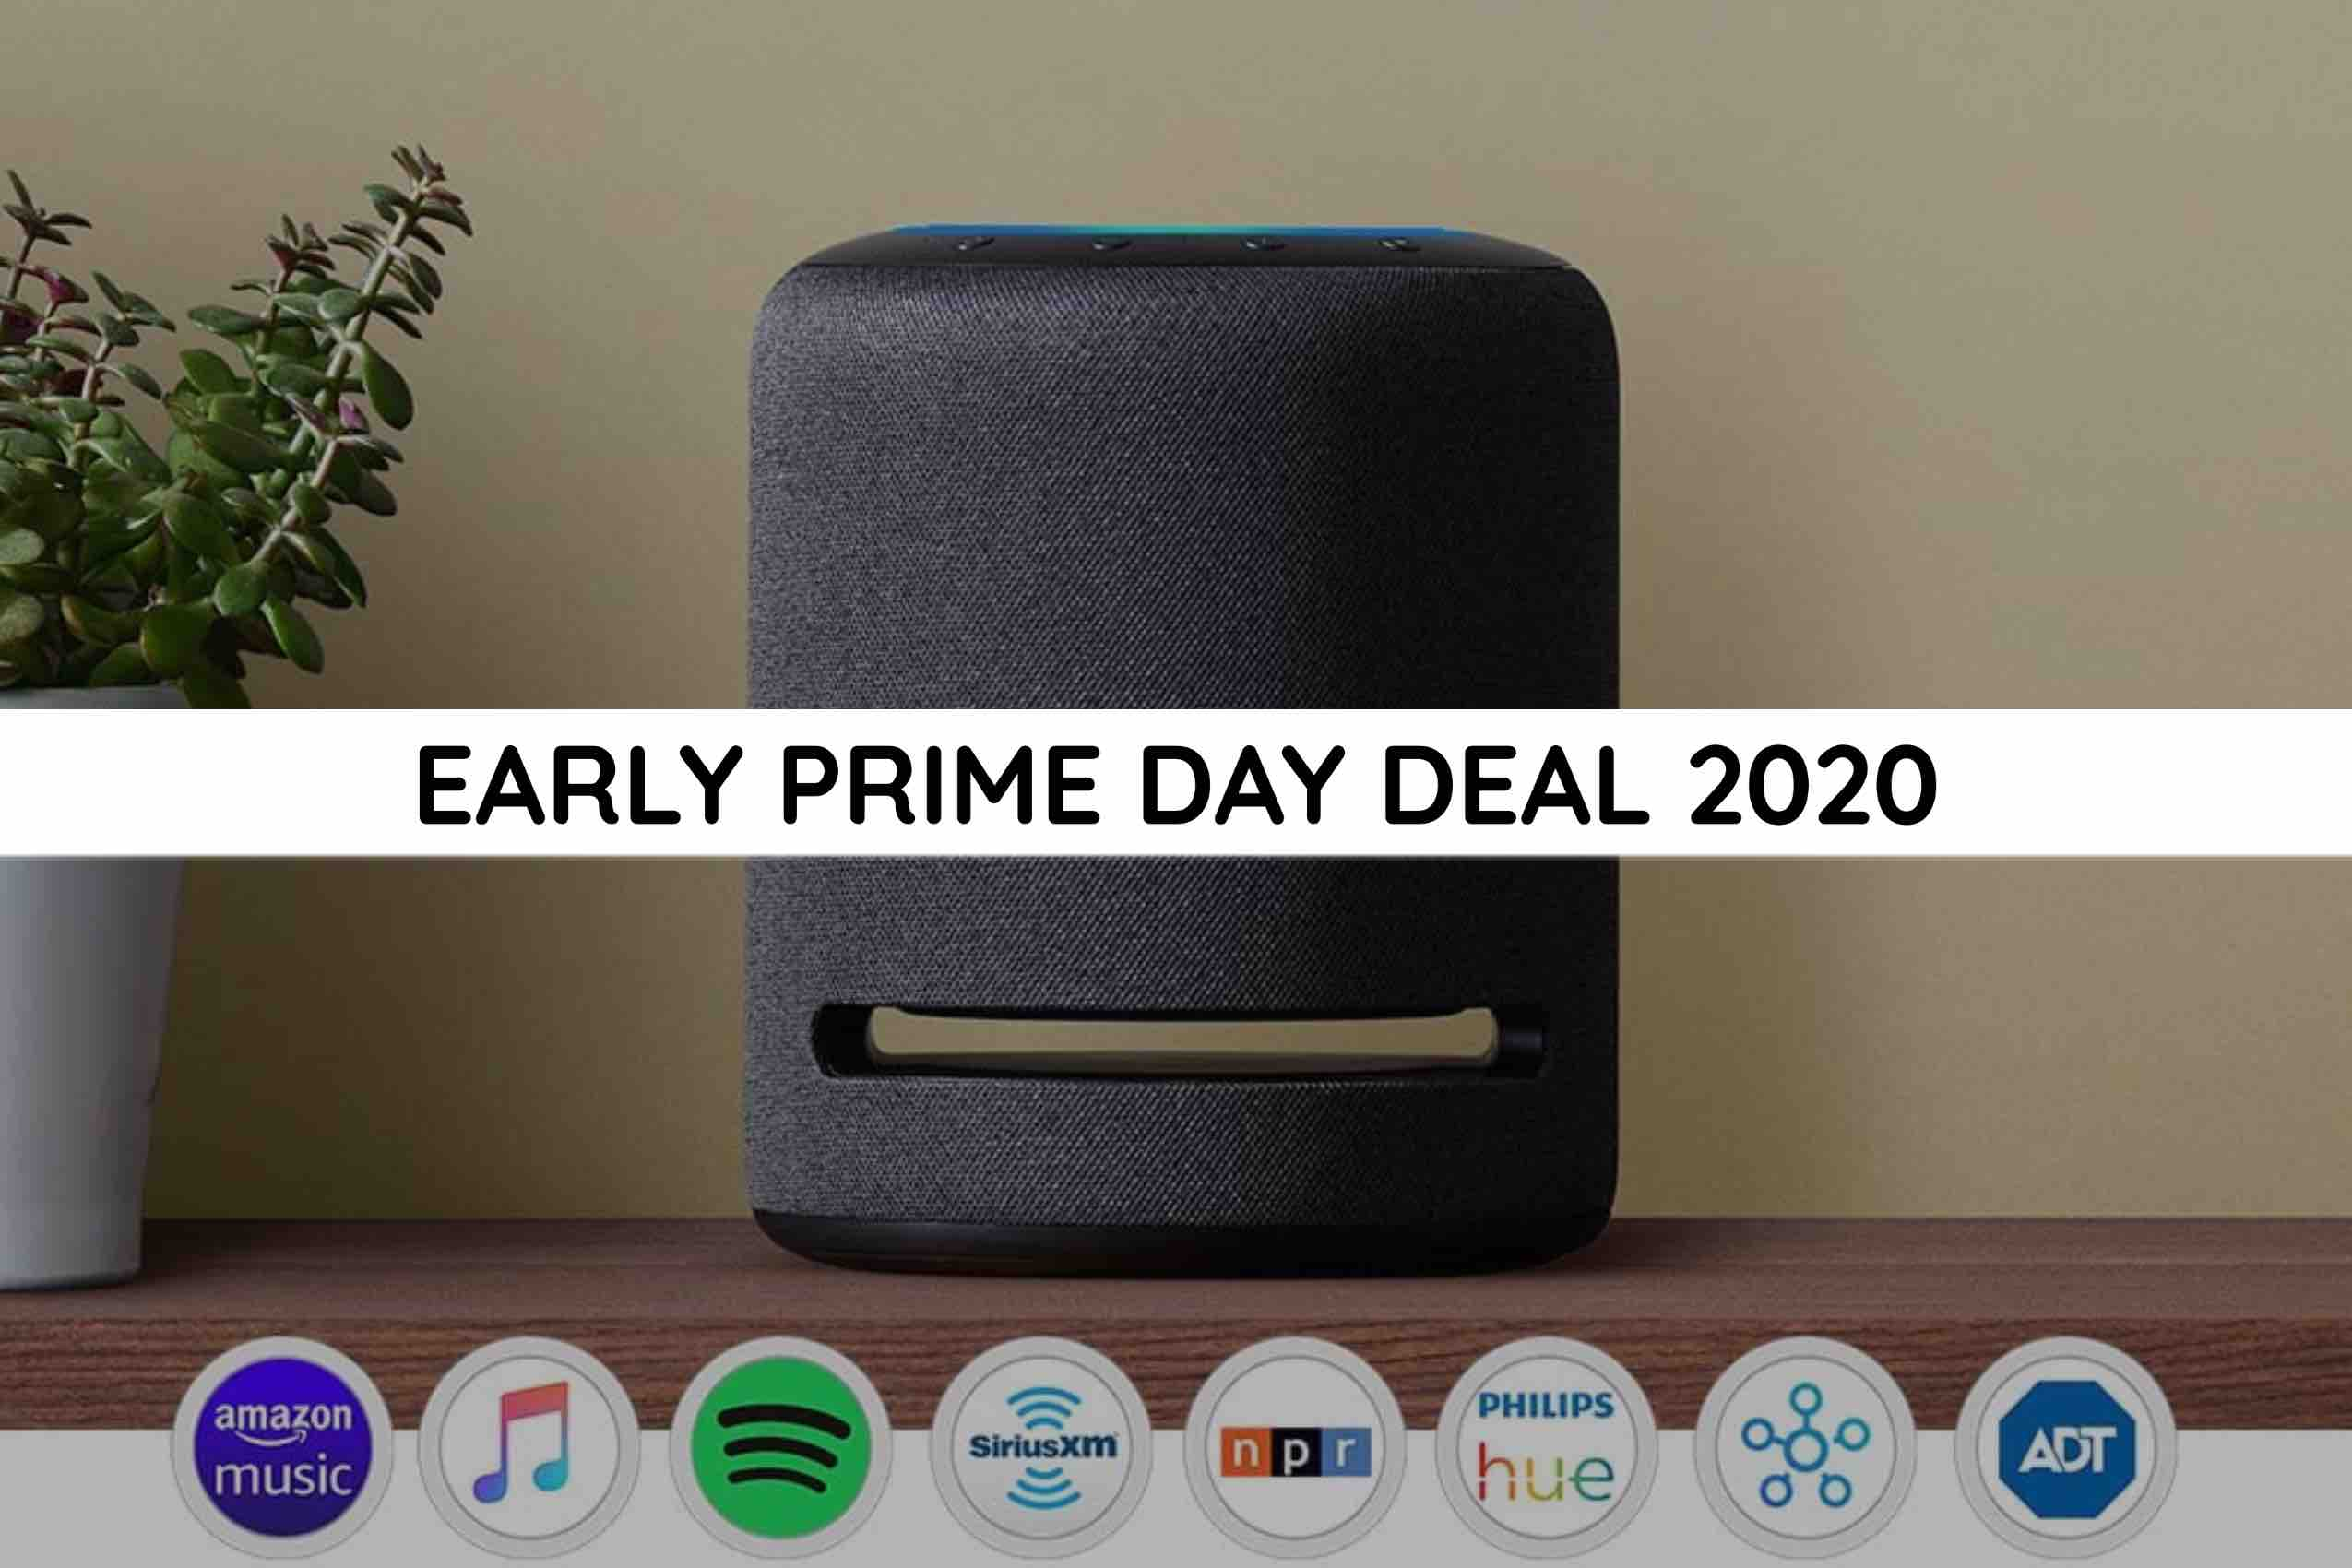 Early Prime Day Deal 2020